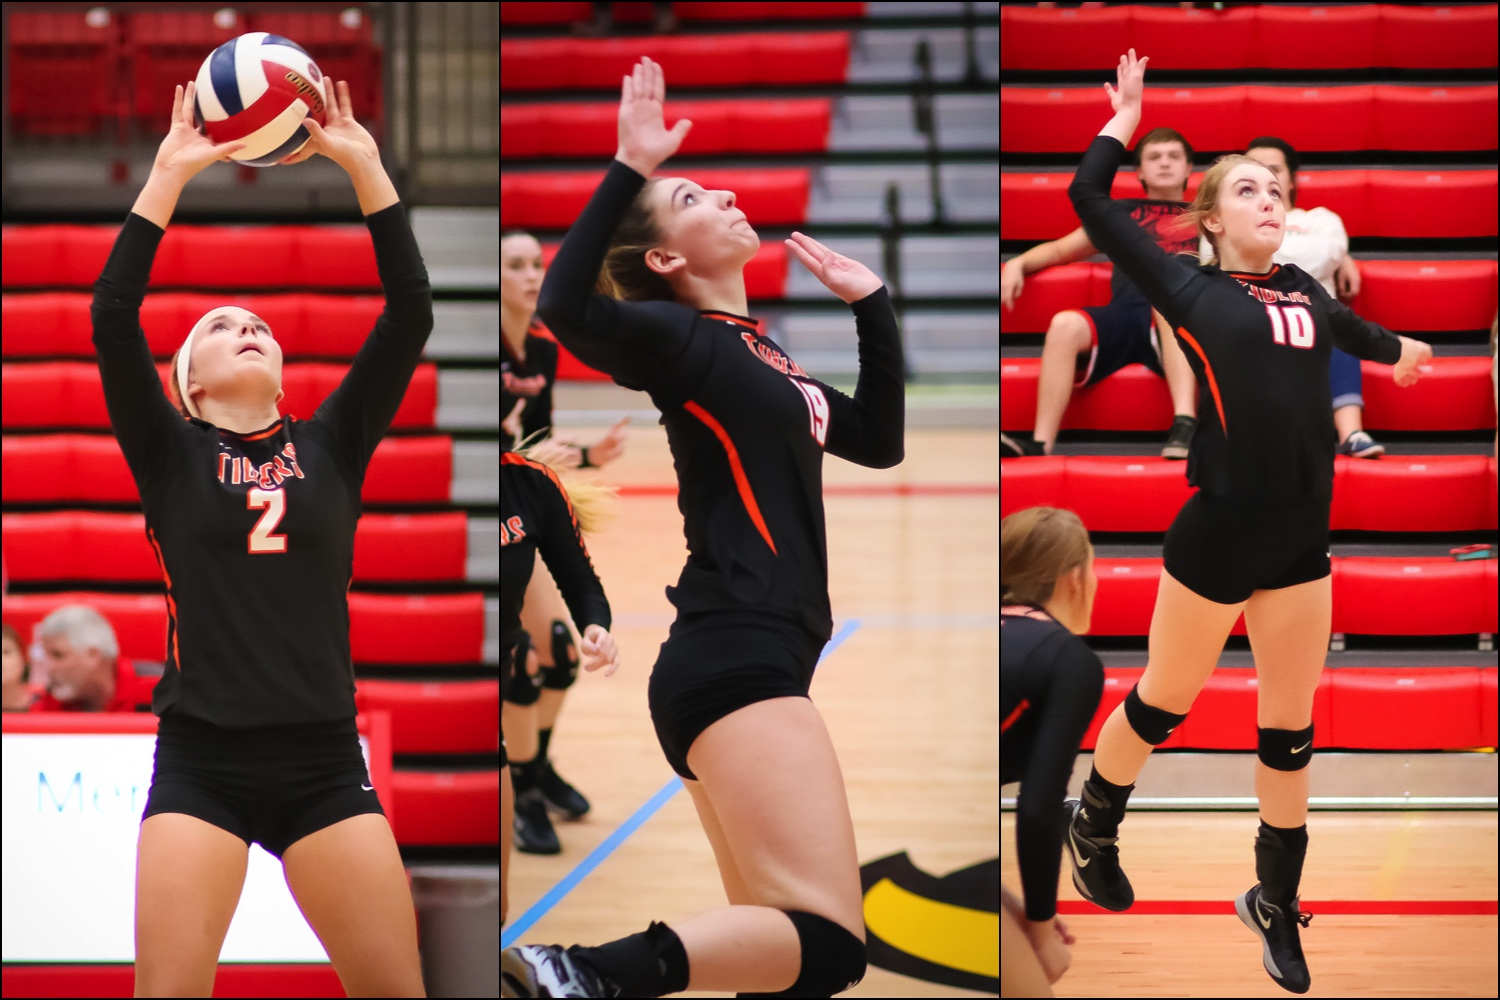 Three Lady Tigers Earn Academic All-State Honors